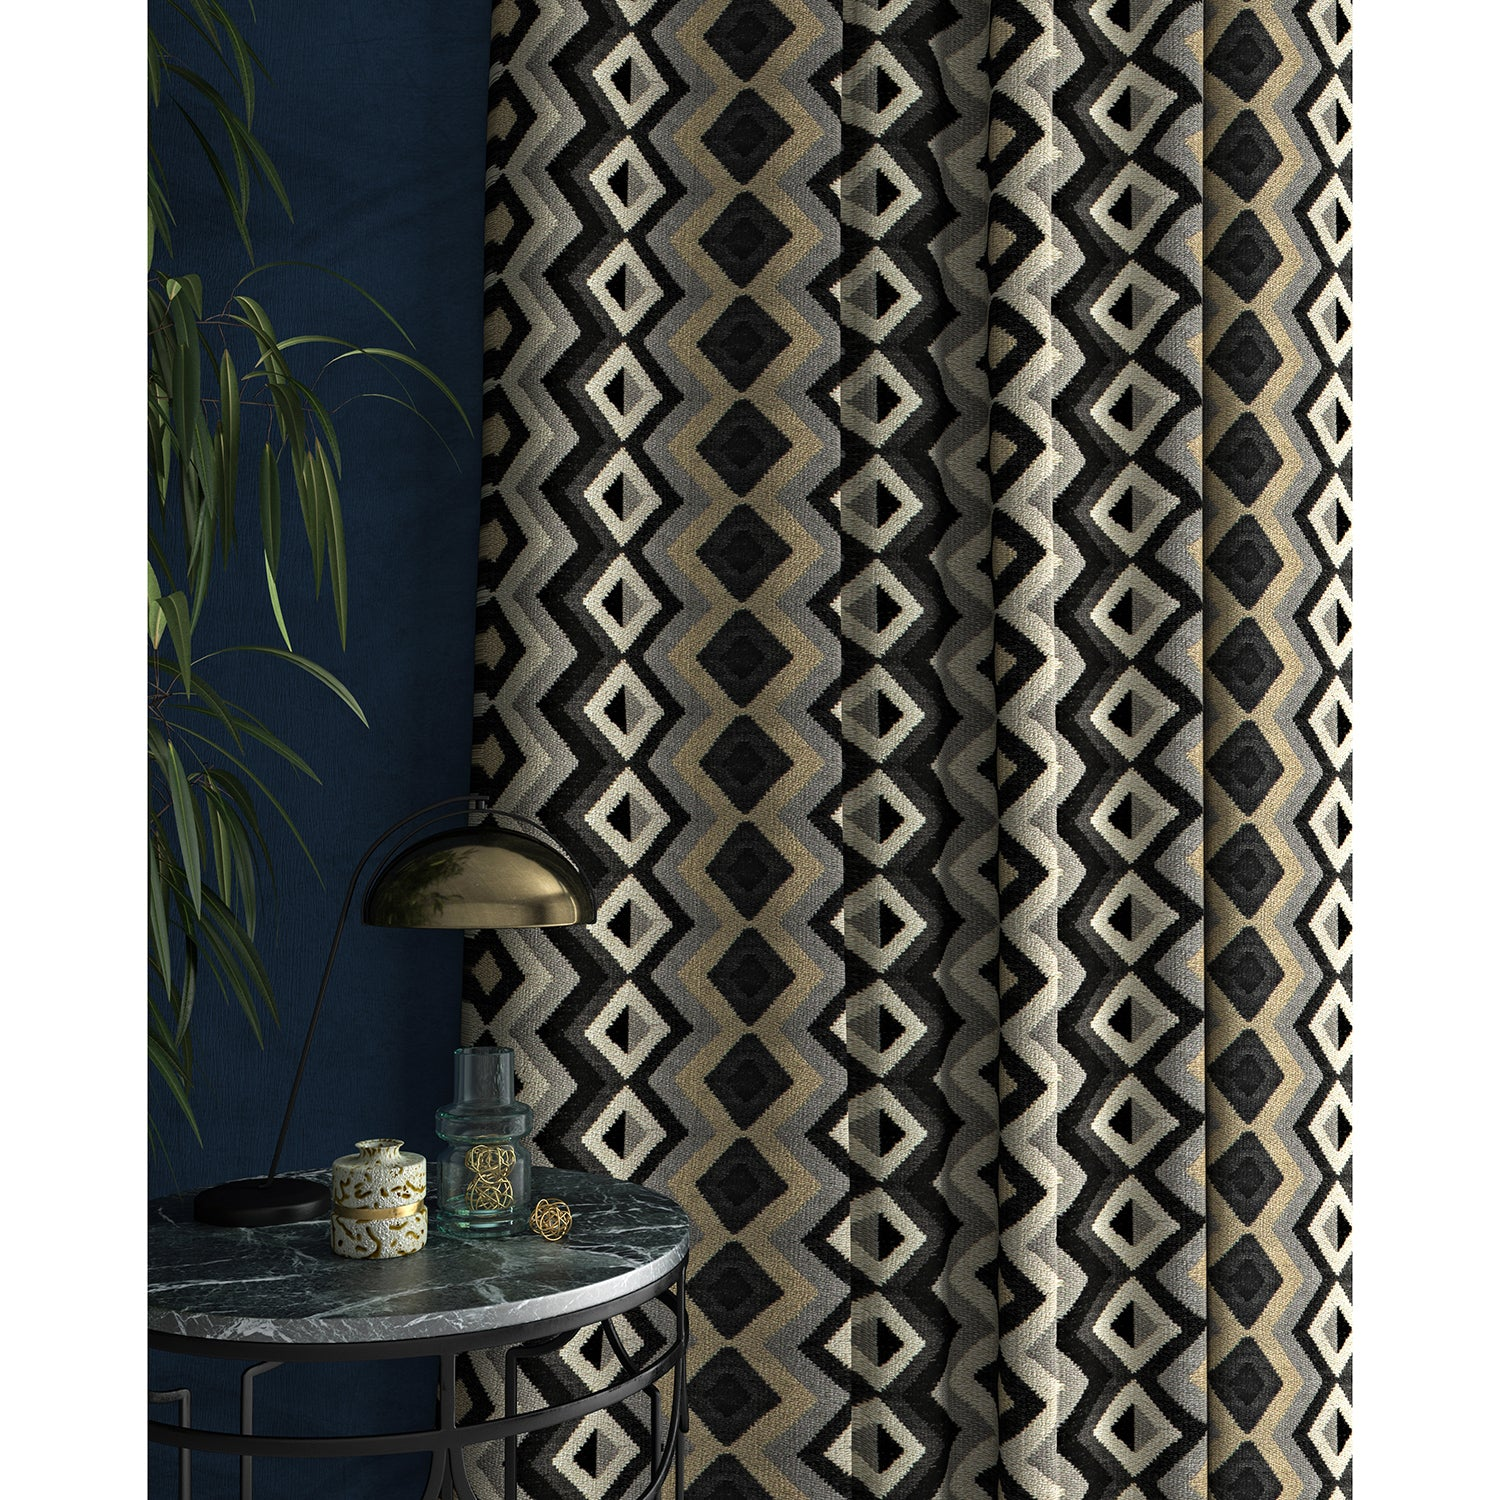 Curtain in a black and white fabric with geometric Navajo inspired design